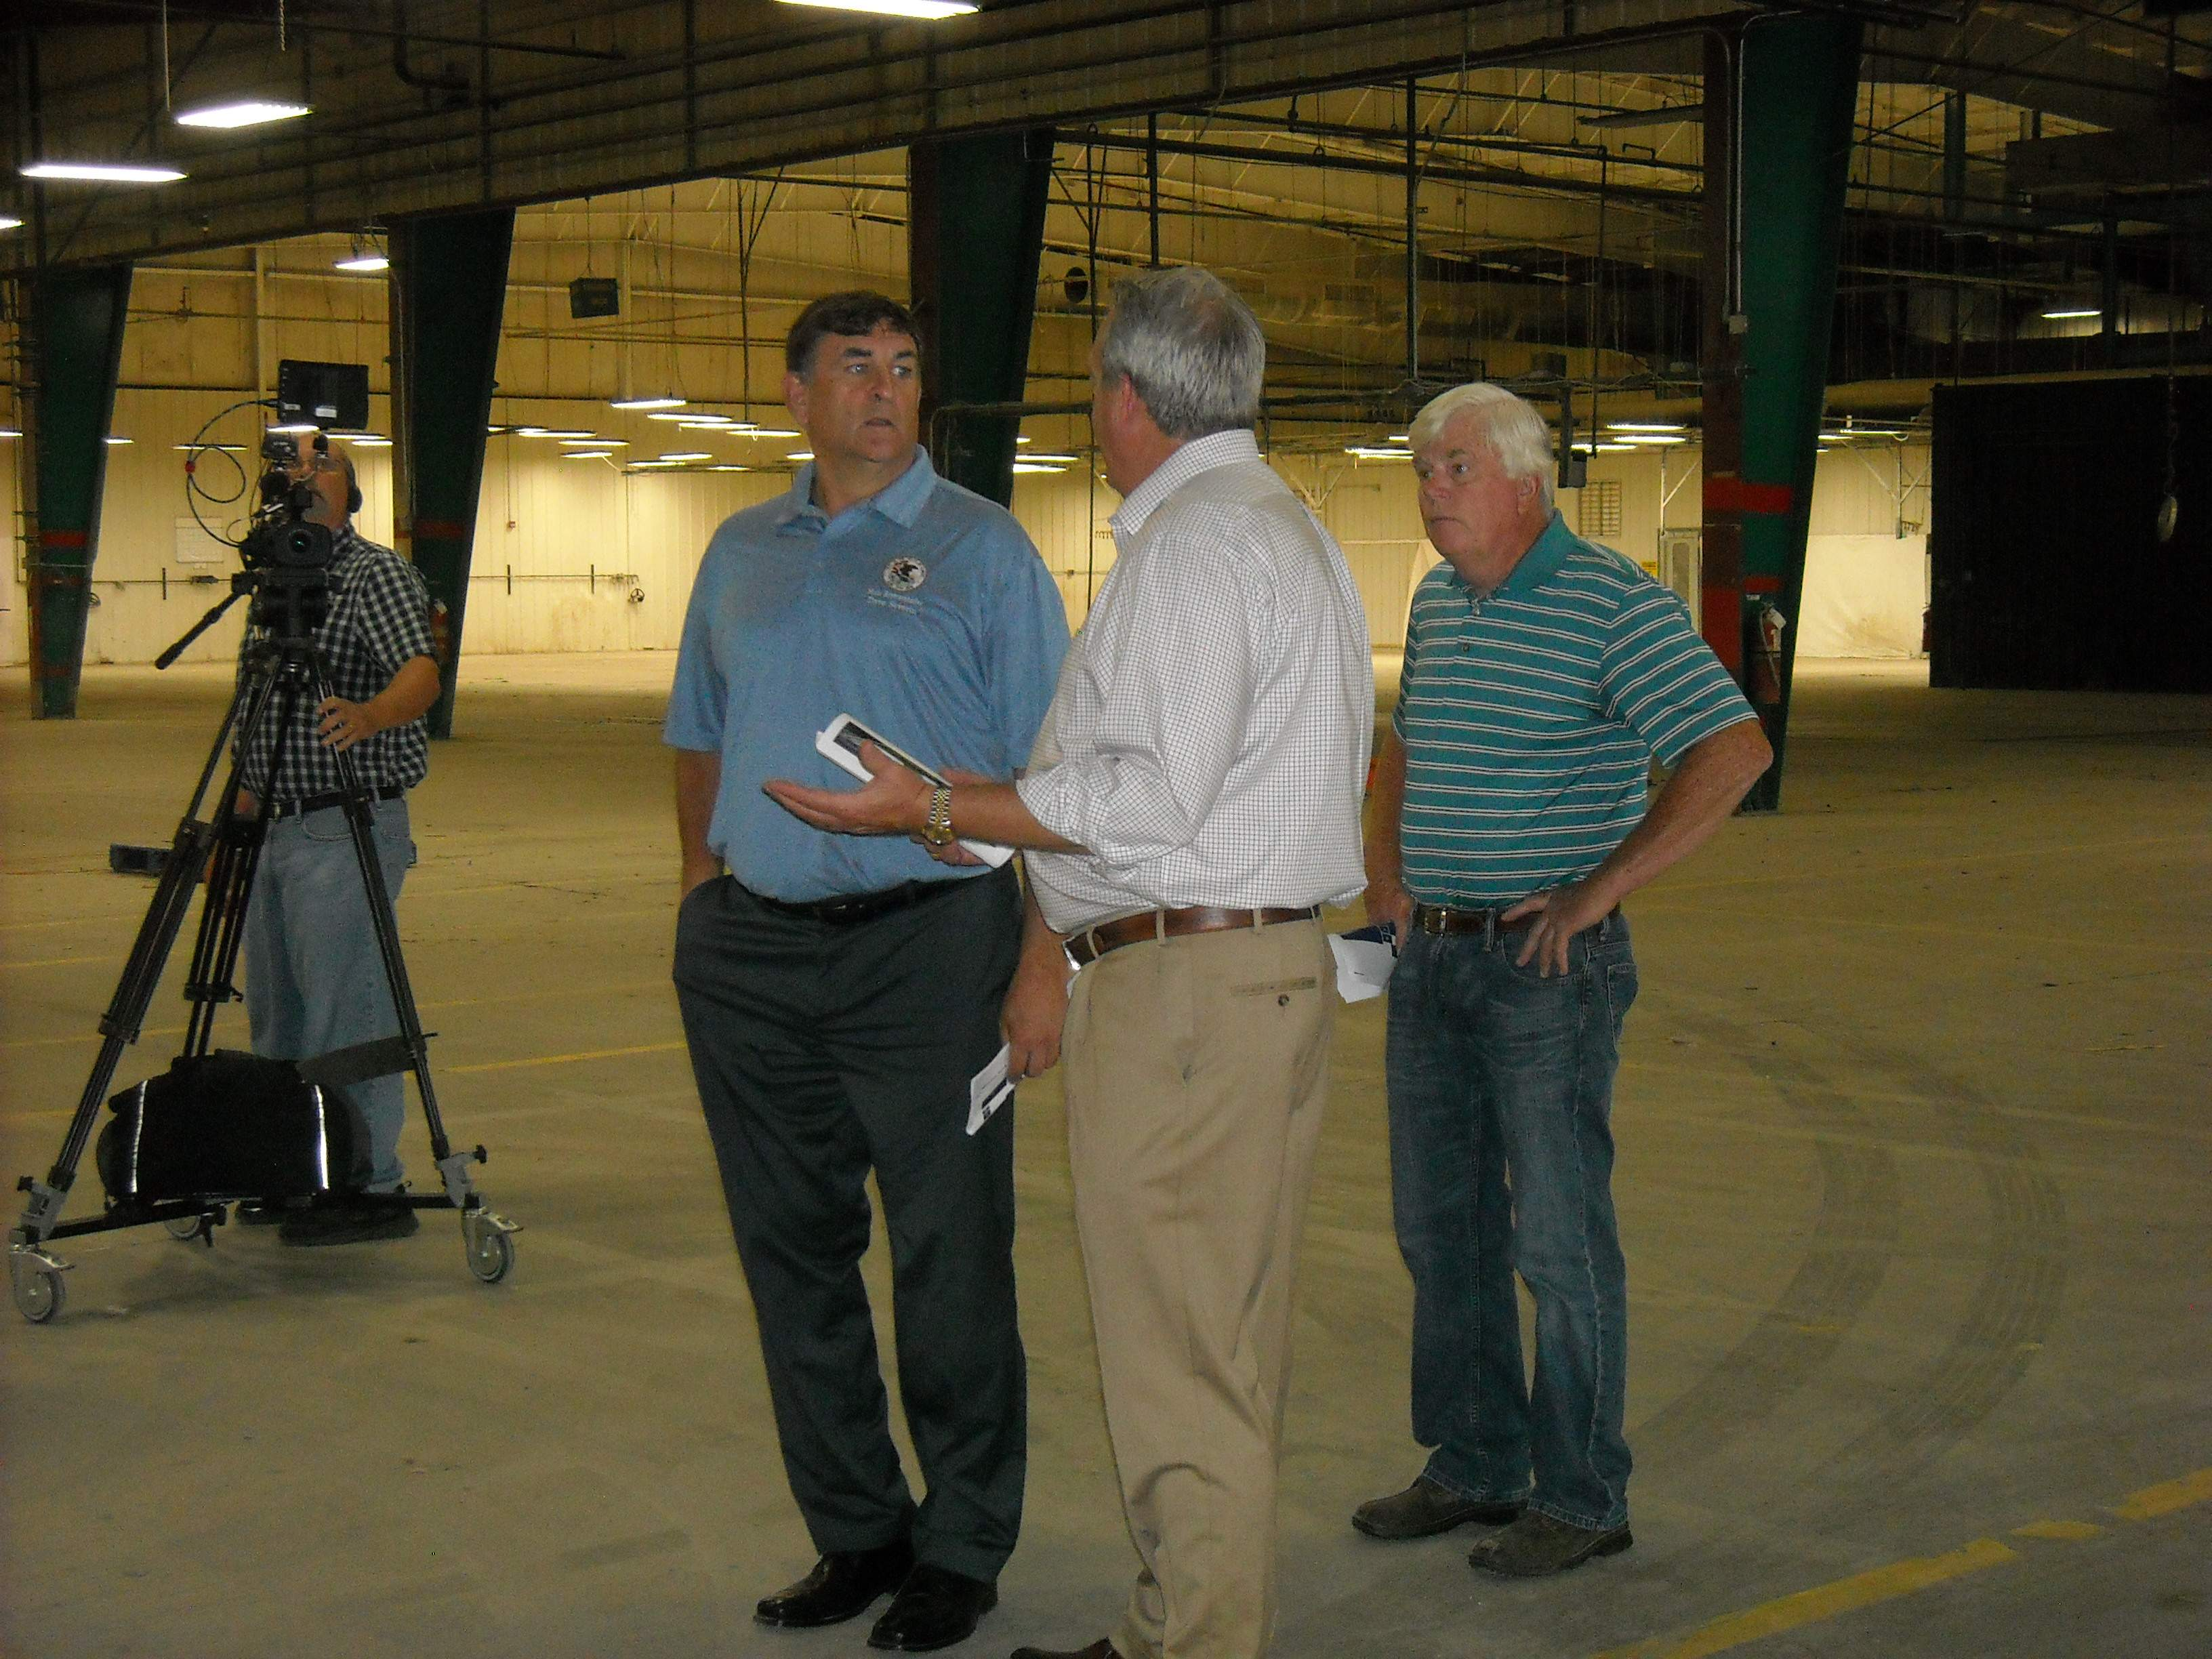 State legislators Dave Severin (R-Benton) and Dale Fowler (R-Harrisburg), along with Franklin County Board Chairman Randall Crocker, were among the tour participants Tuesday at the former Bombardier boat factory in Benton. Local officials are marketing the nearly 400,000-square-foot facility for job growth.